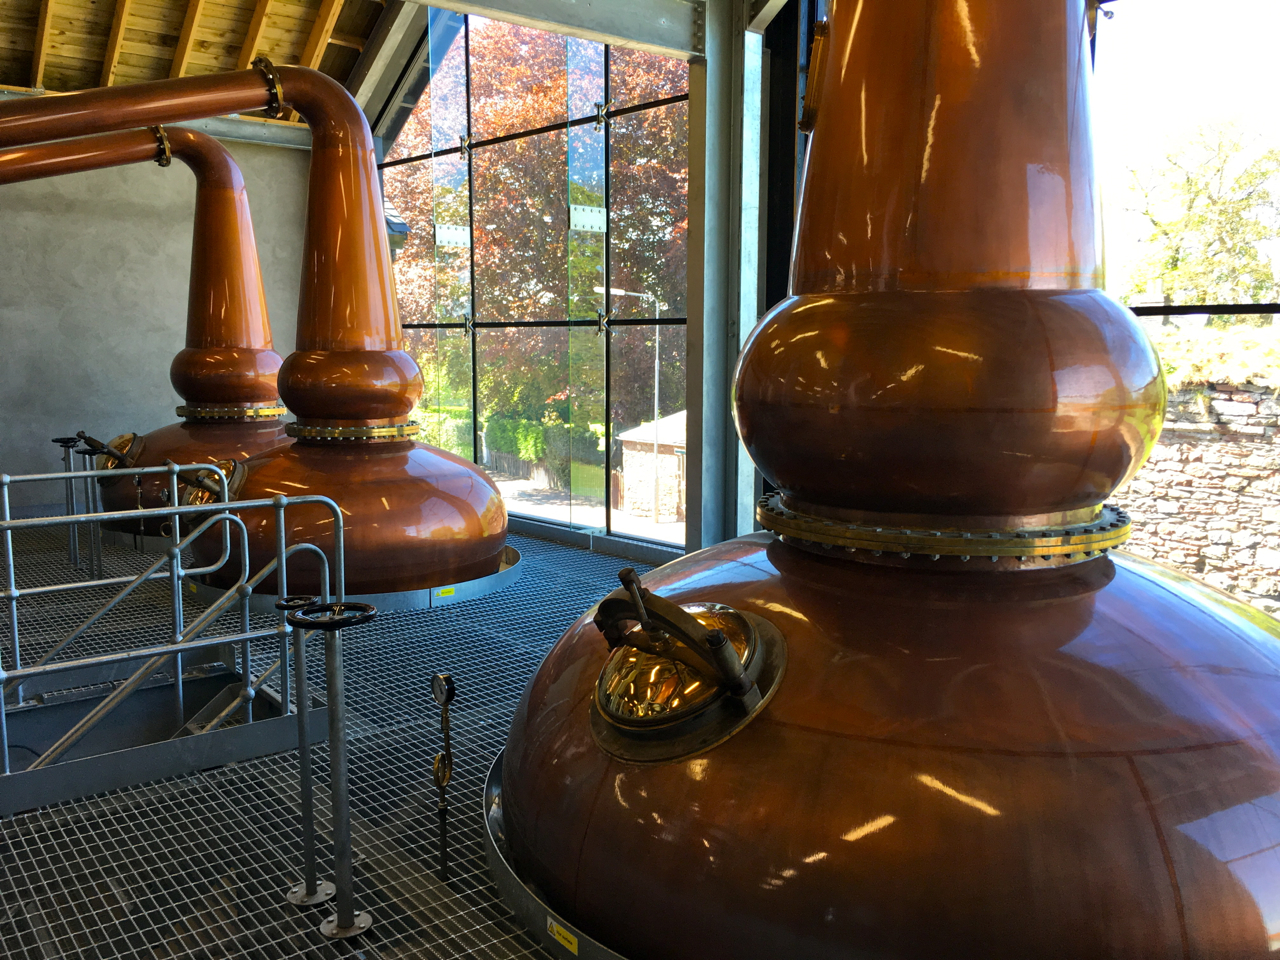 Lindores Abbey Single Malt Scotch Whisky Distillery Brennerei Malt Mariners Pot Stills Brennblasen Destillation